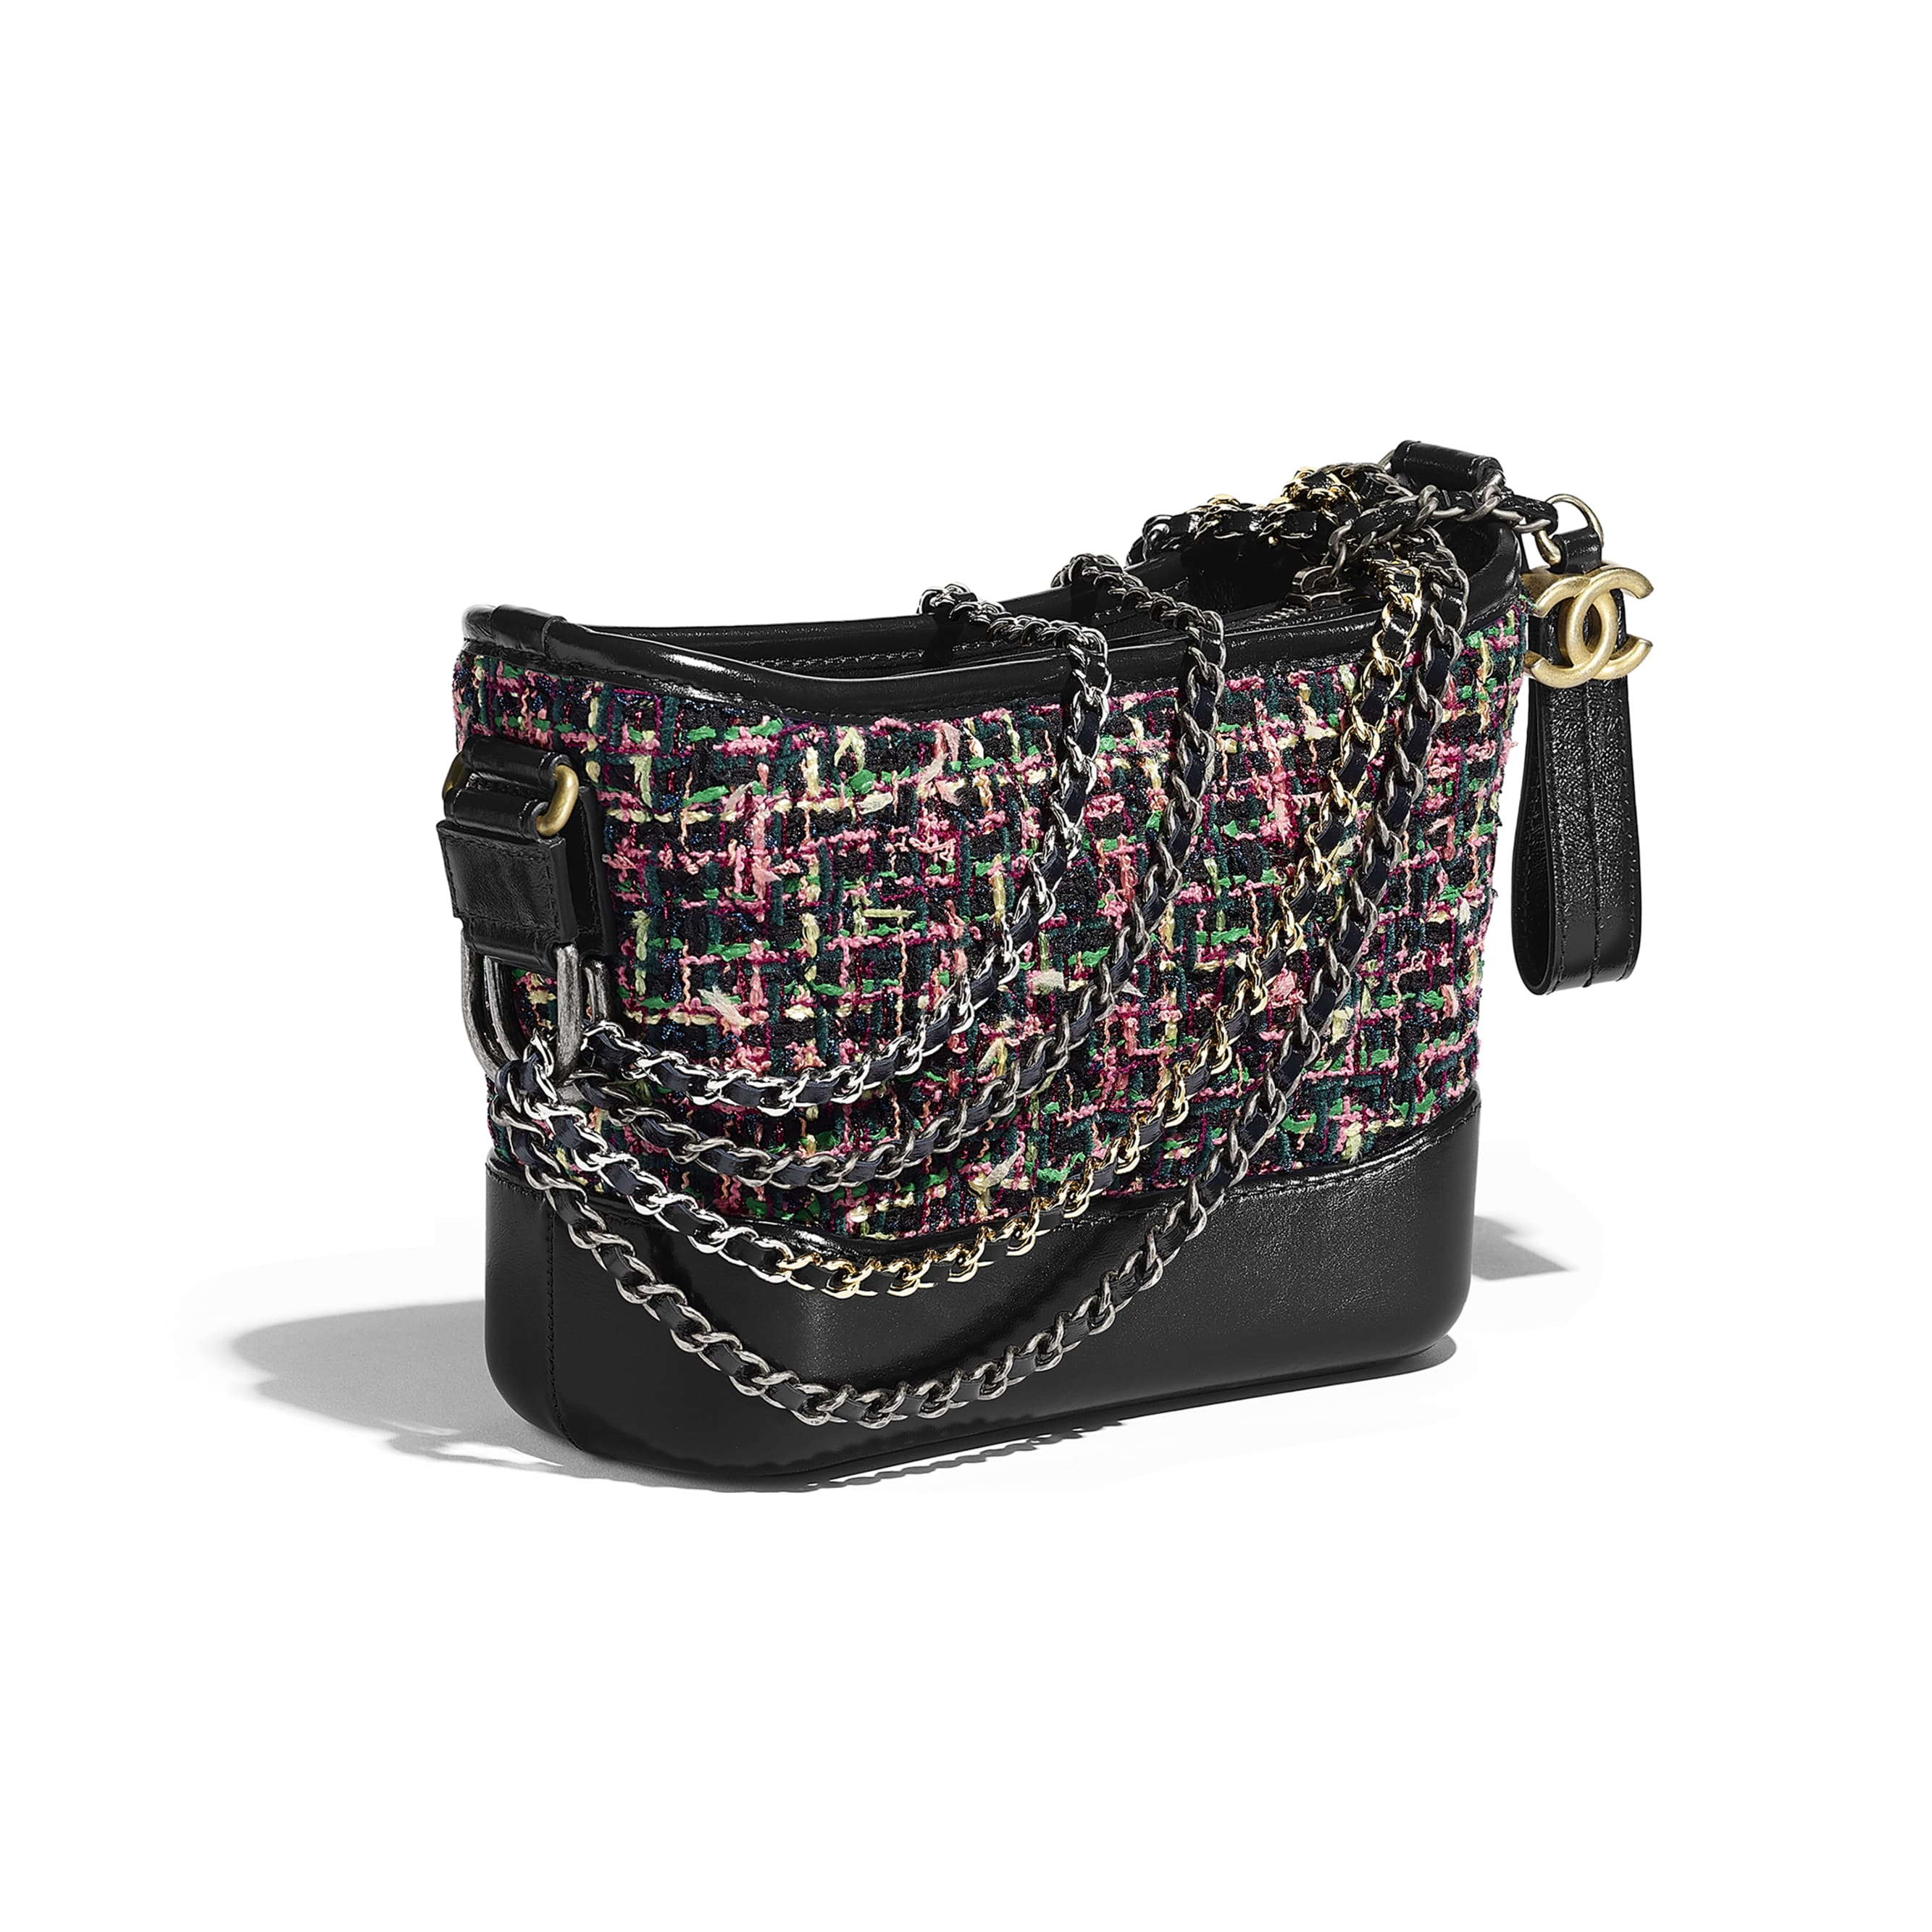 CHANEL'S GABRIELLE Small Hobo Bag - Pink & Navy Blue - Tweed, Calfskin, Gold-Tone & Silver-Tone Metal - Other view - see standard sized version